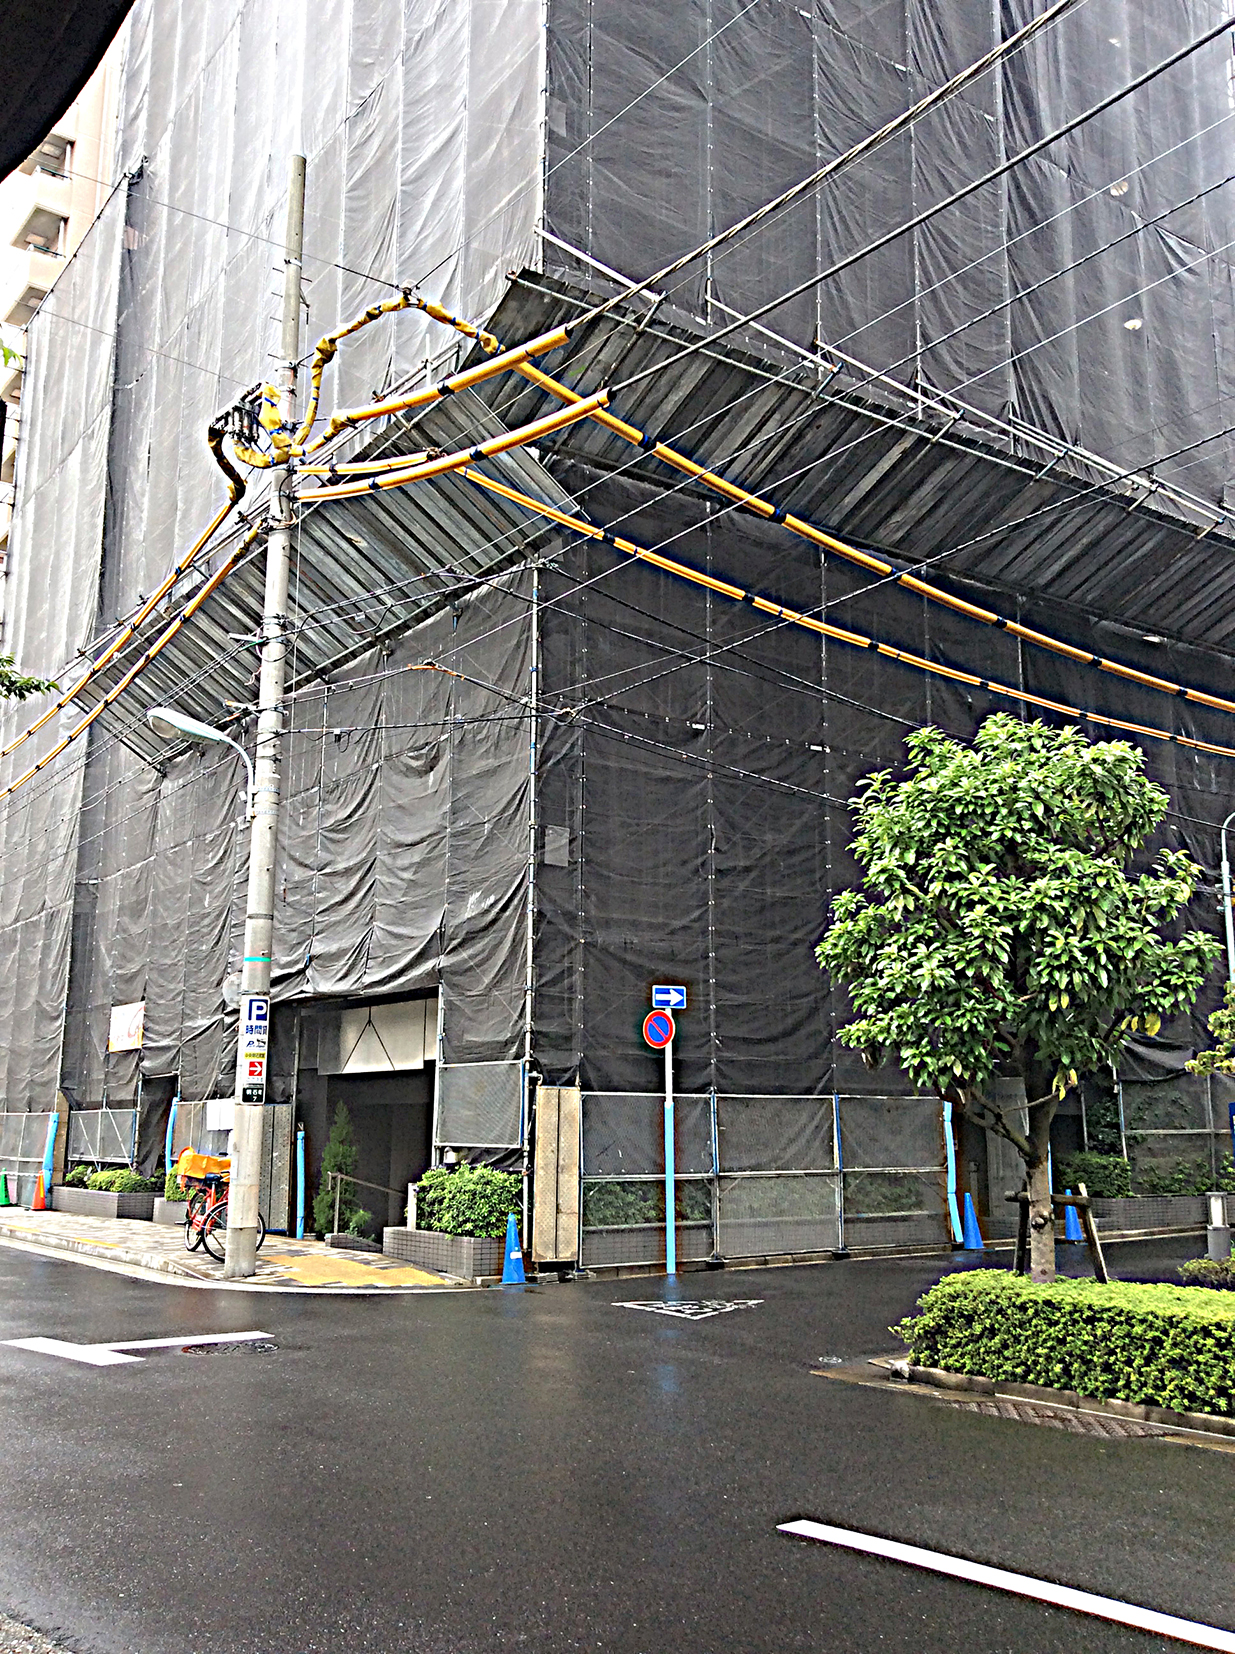 grey tarpaulins cover the scaffolding surrounding this building. The heavy cables strung out from the pole in front are covered in bright yellow polystyrene - keeping workmen aware of their presence.